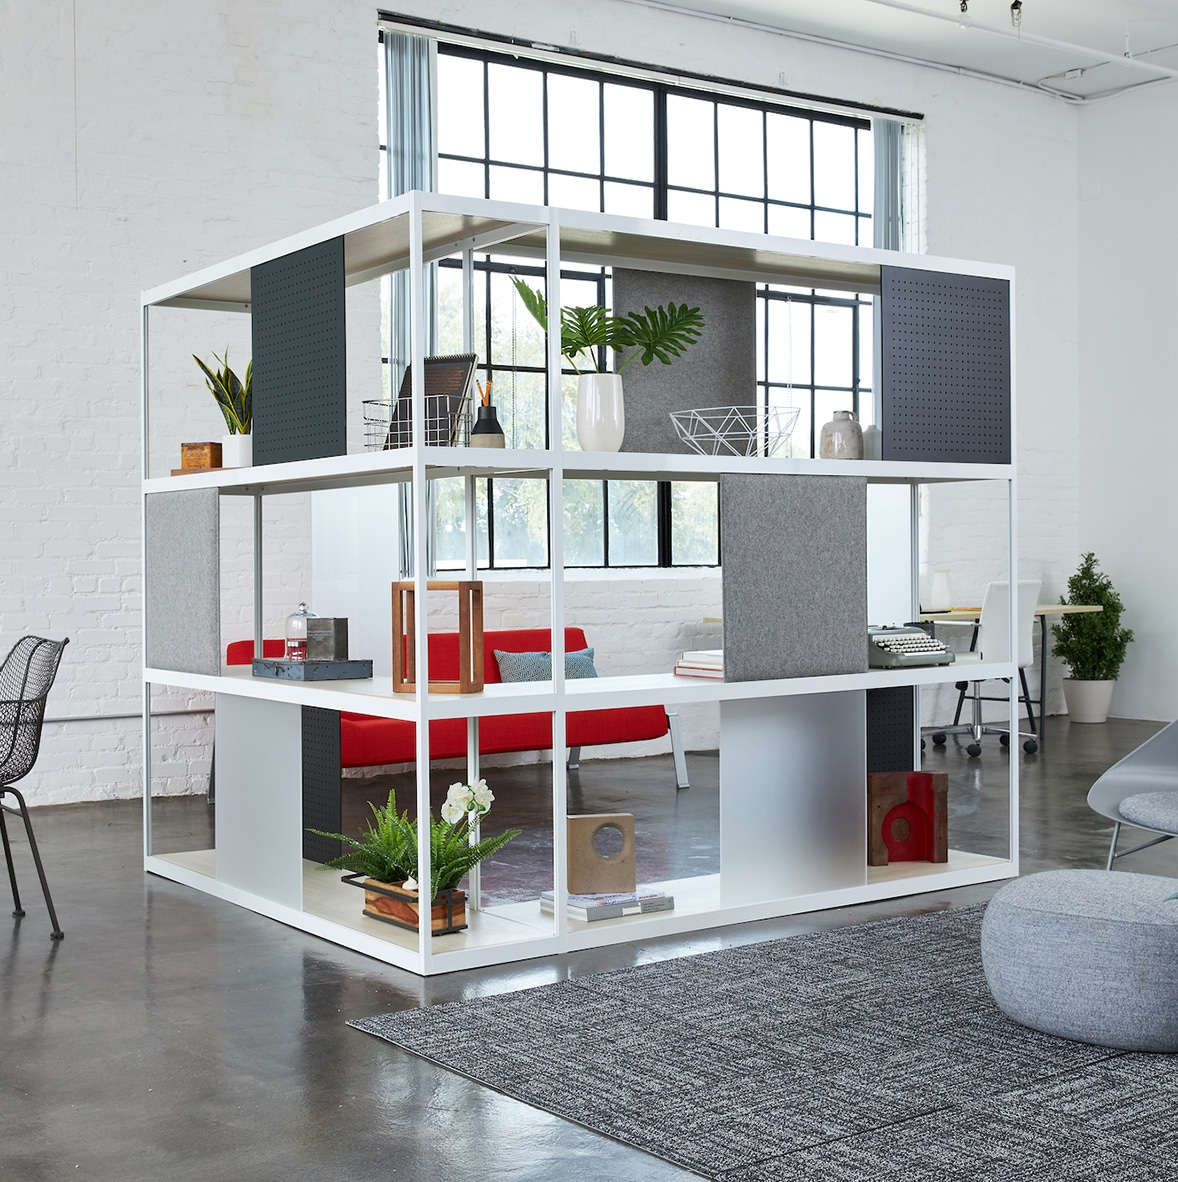 Loftwall Shift Modern Shelving System in Office